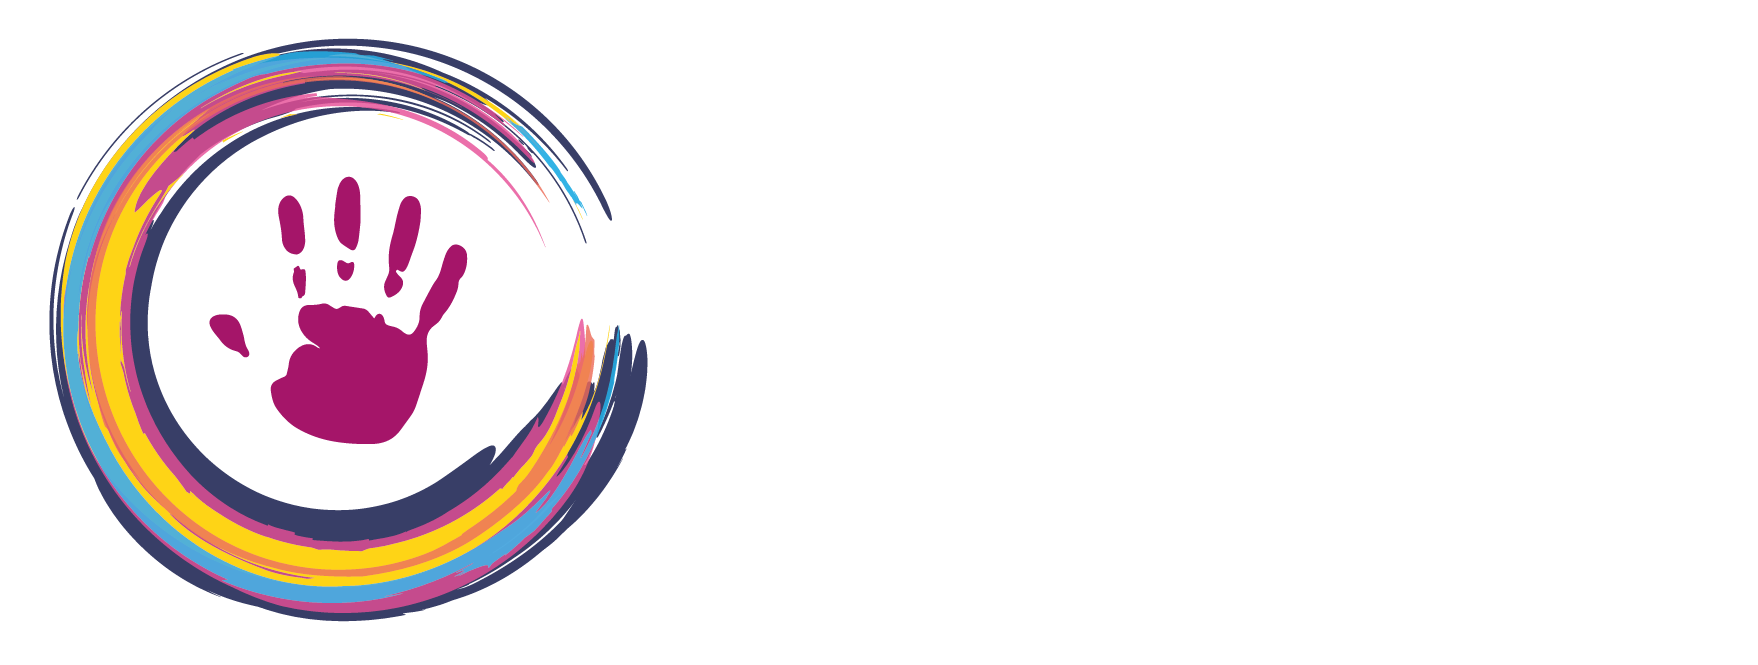 Tackling Child Sexual Exploitation Conference 2021